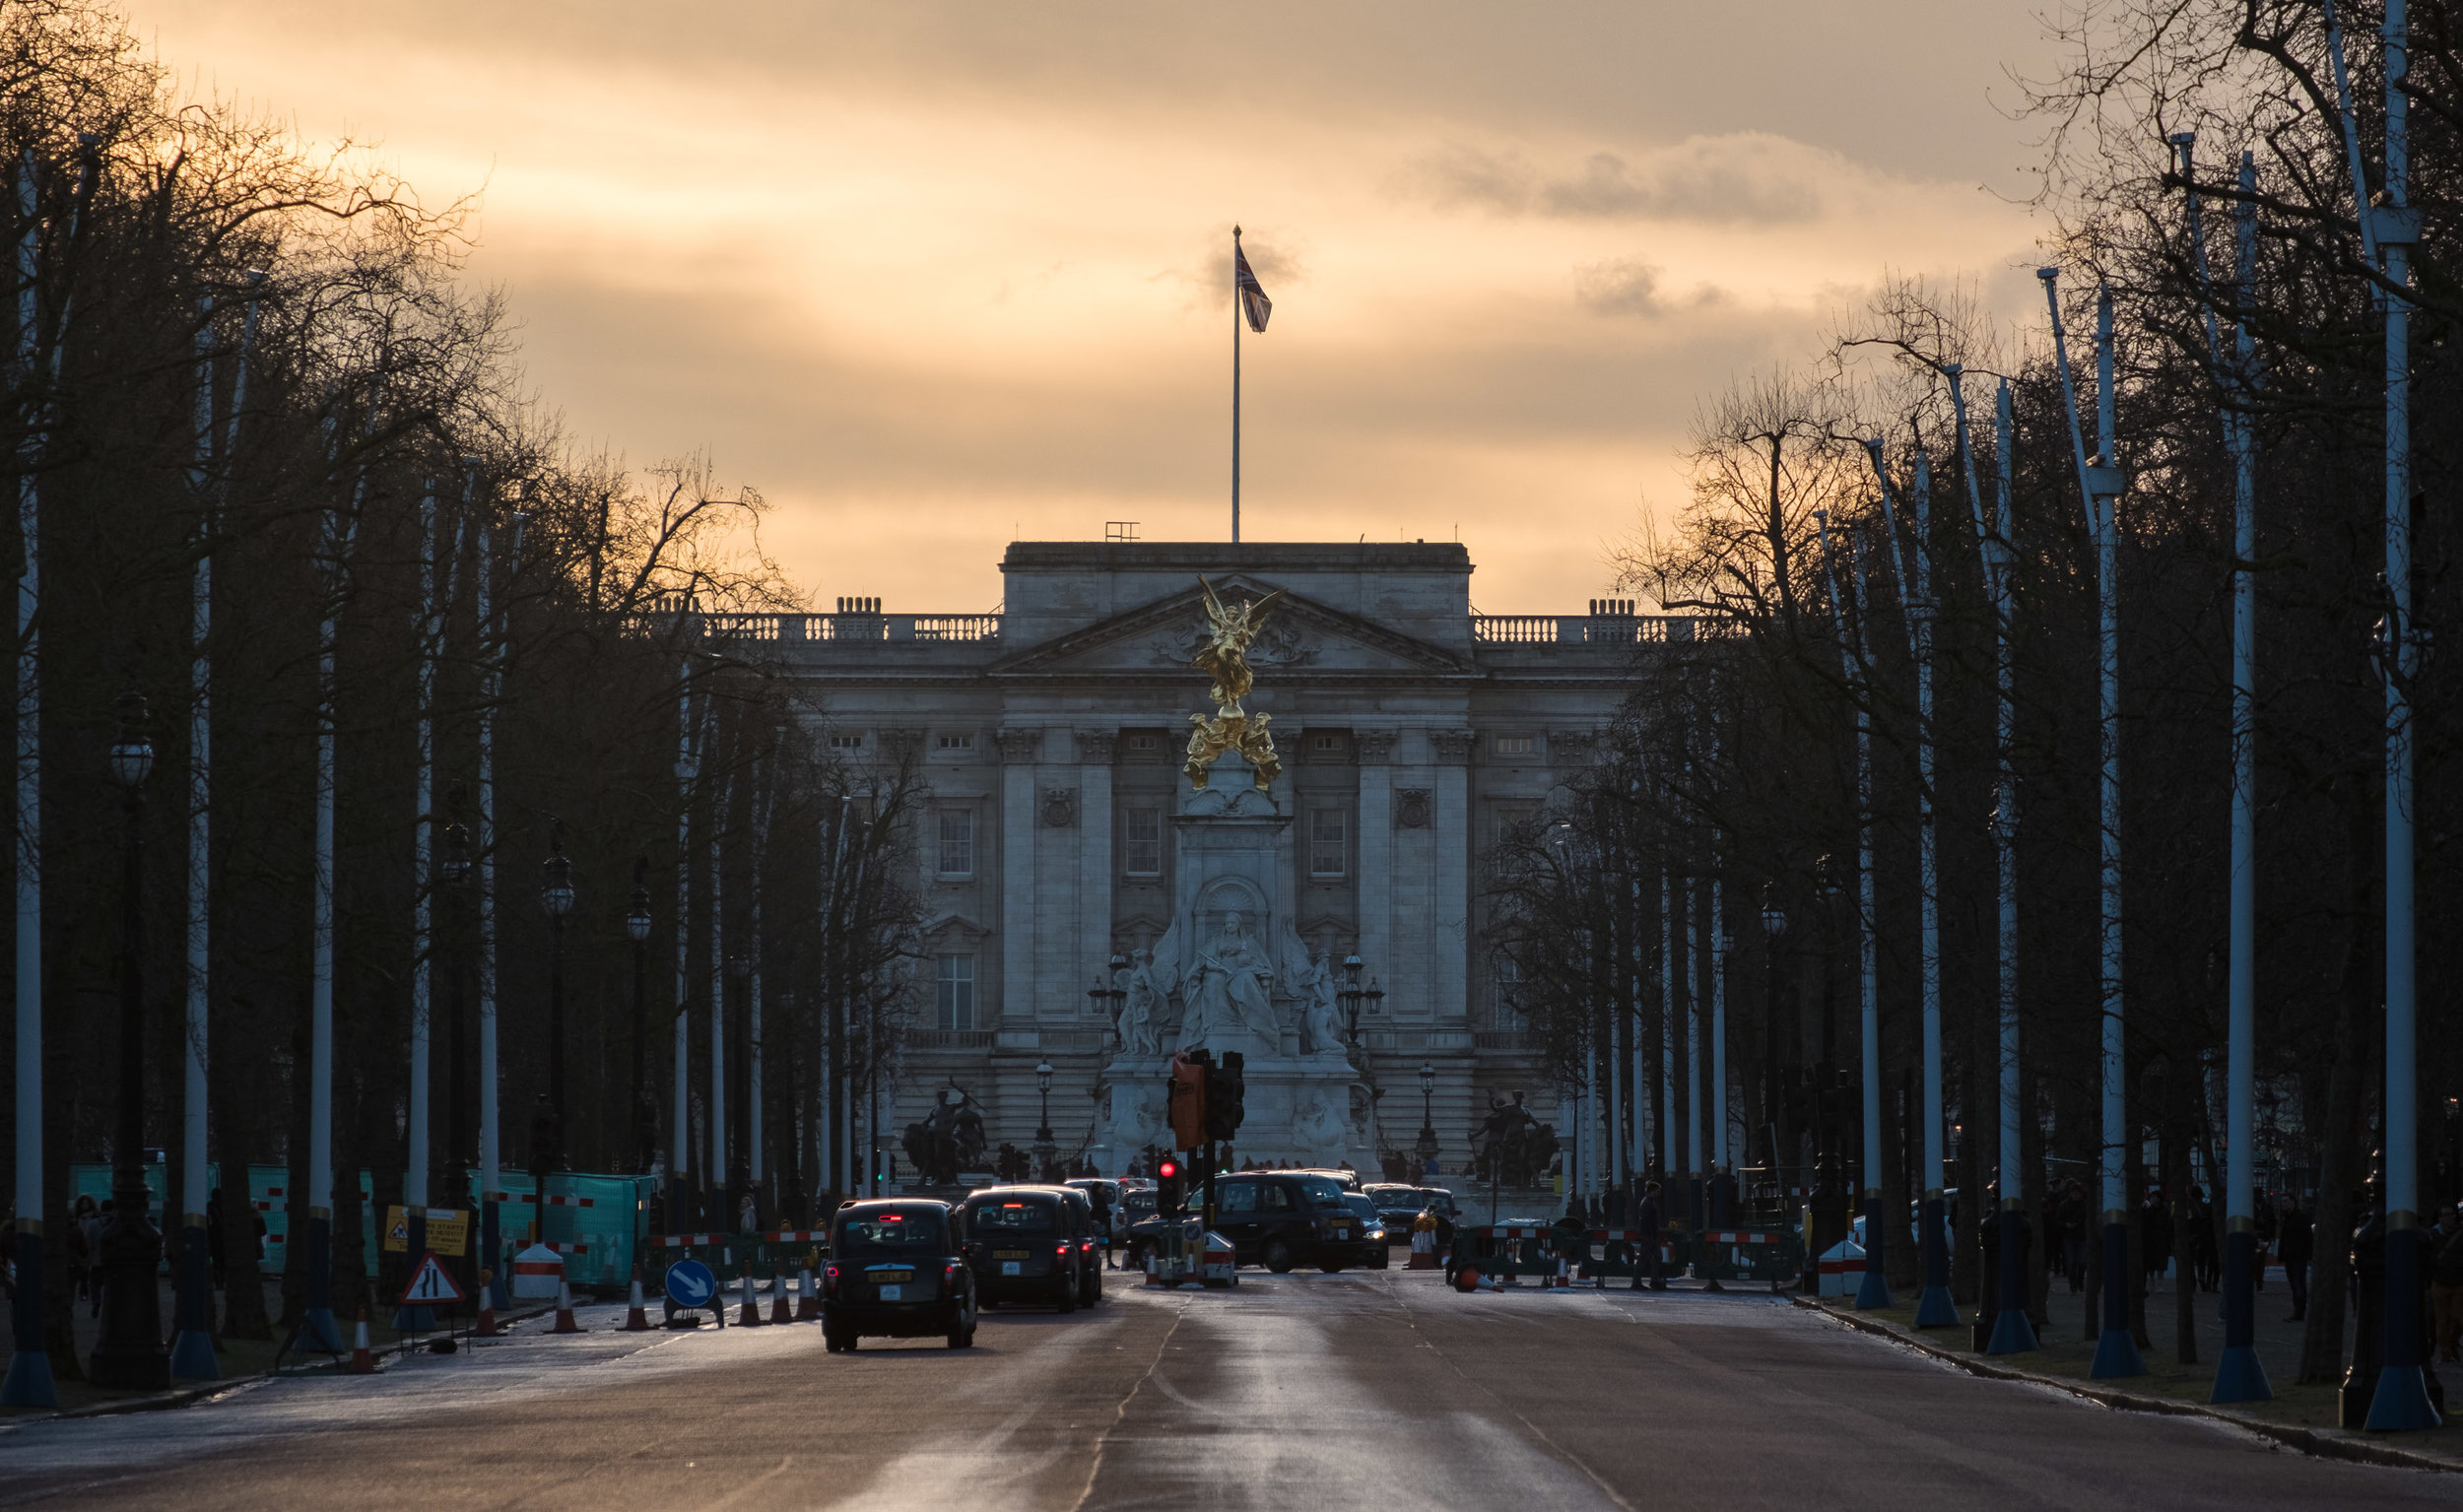 The Mall | Buckingham Palace